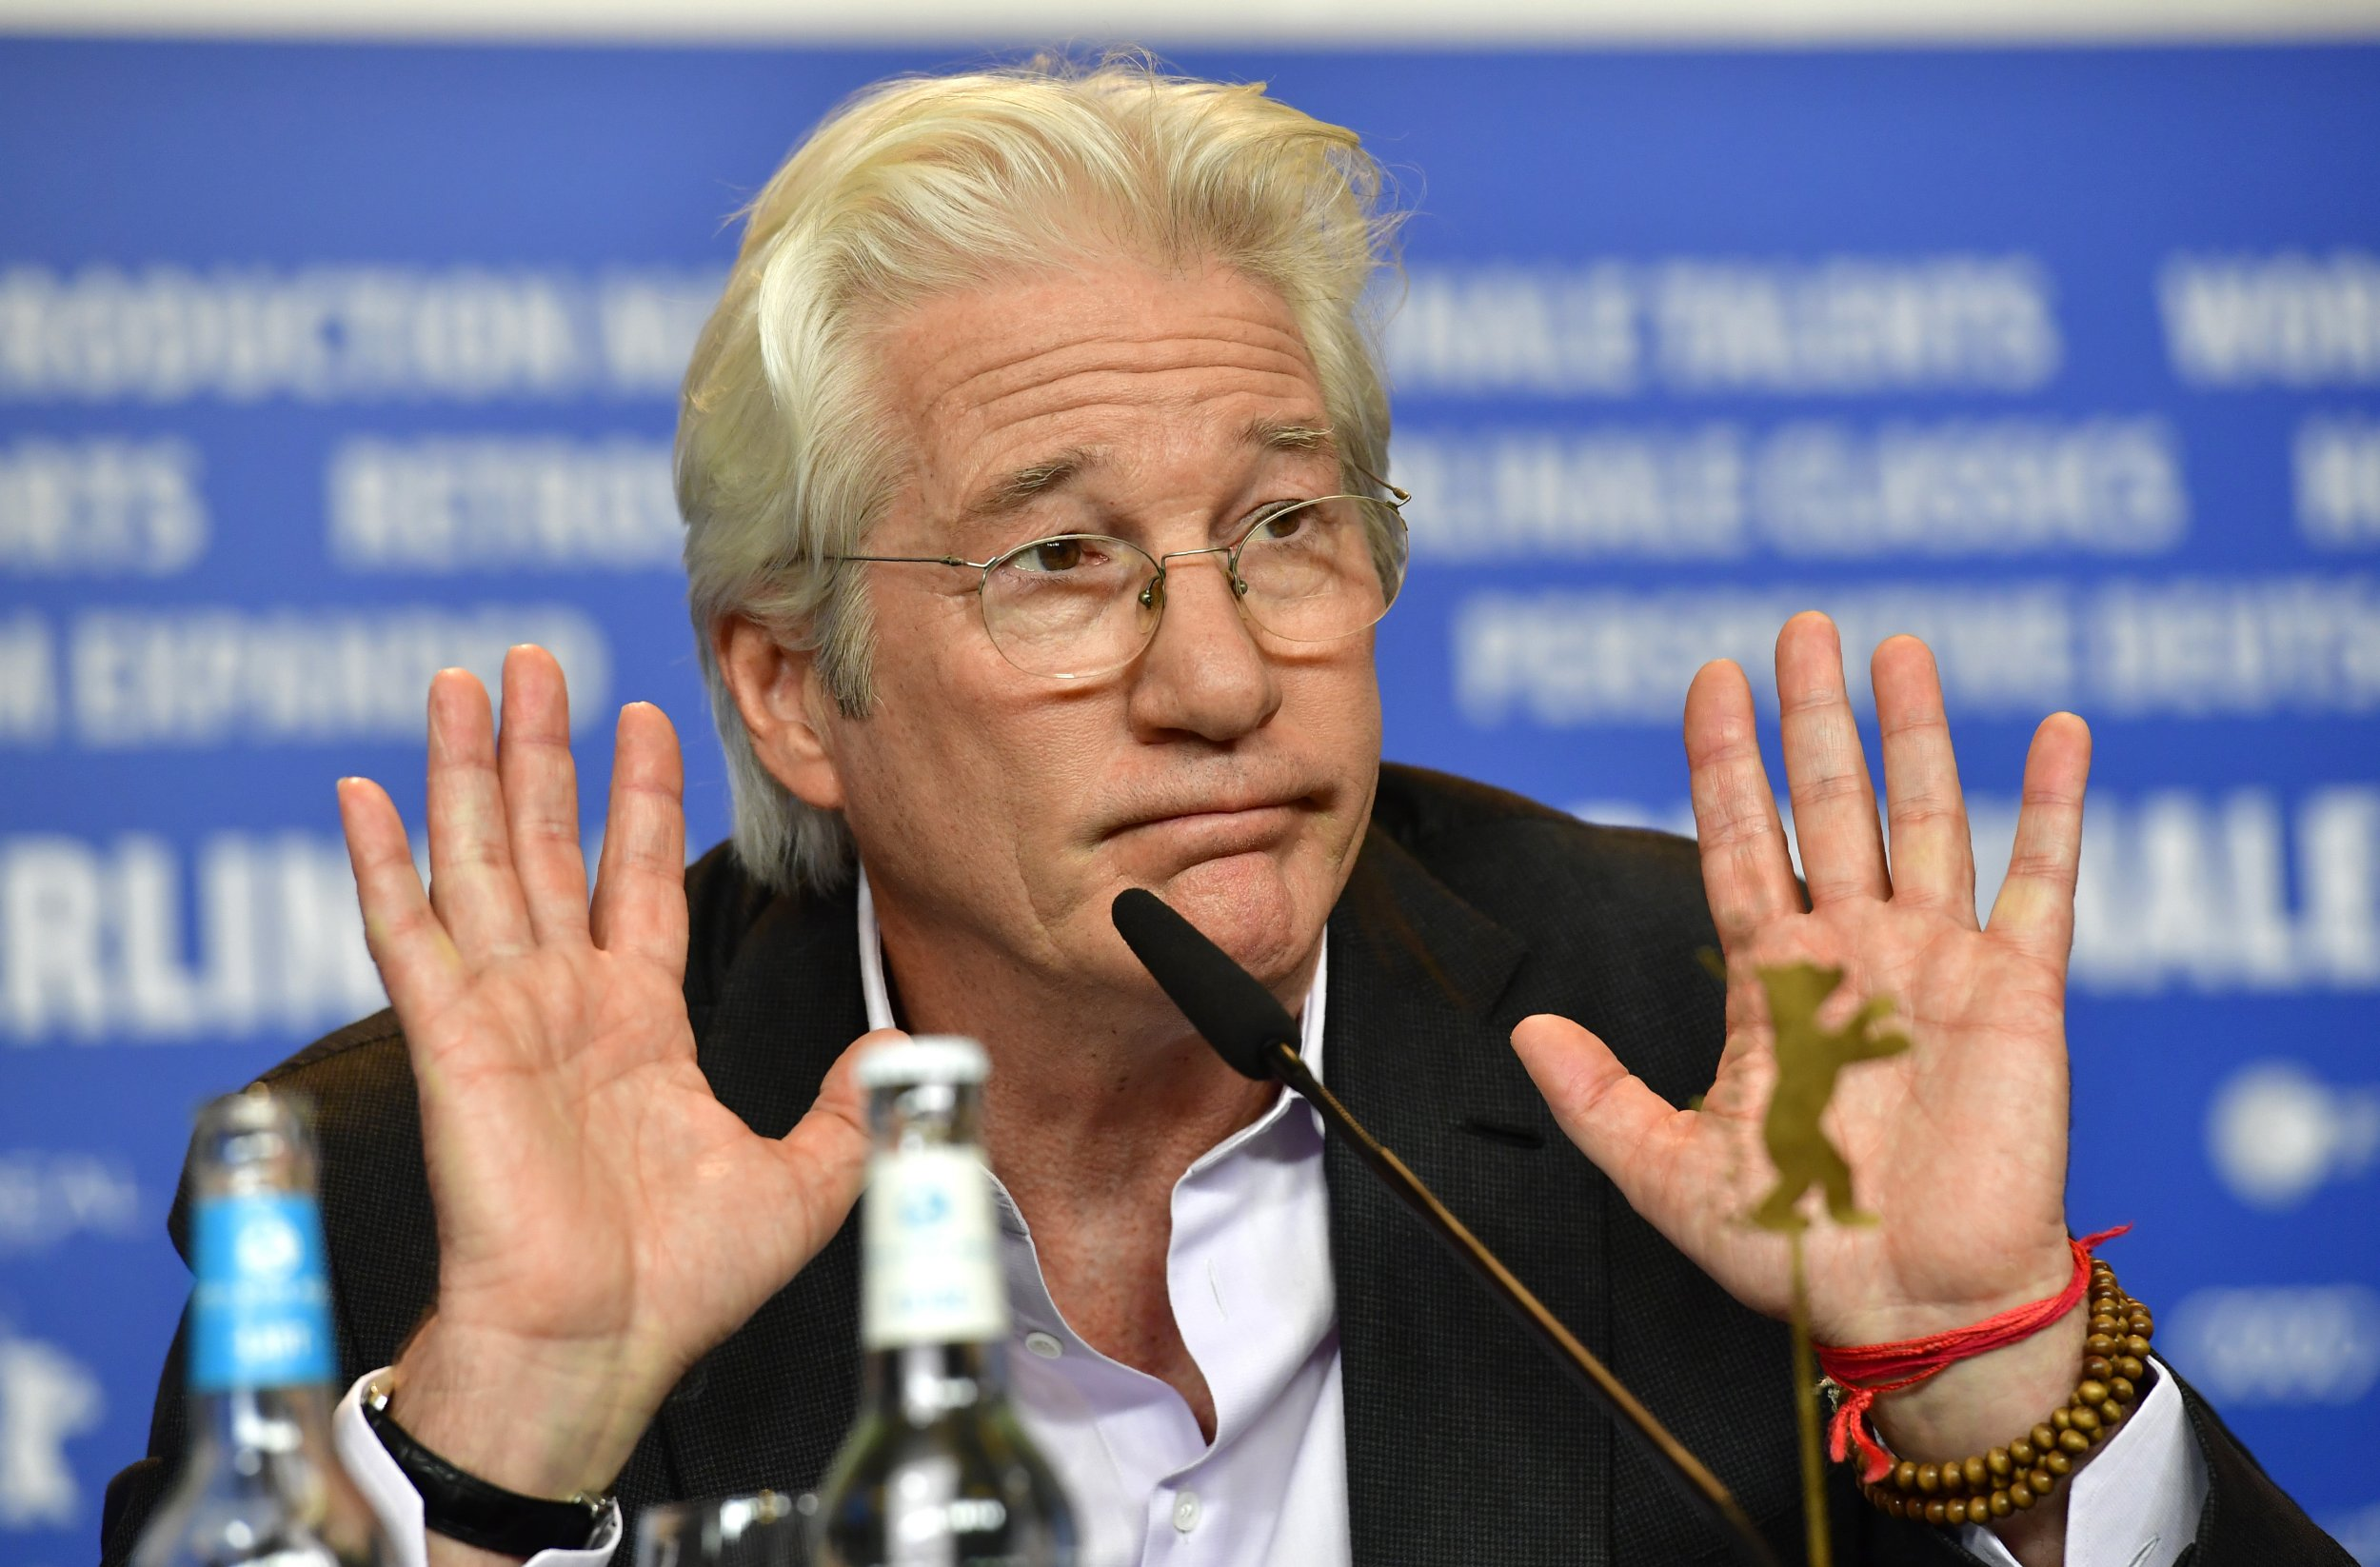 Richard Gere: Richard Gere: There Is 'No Defense' Of Israel's Occupation